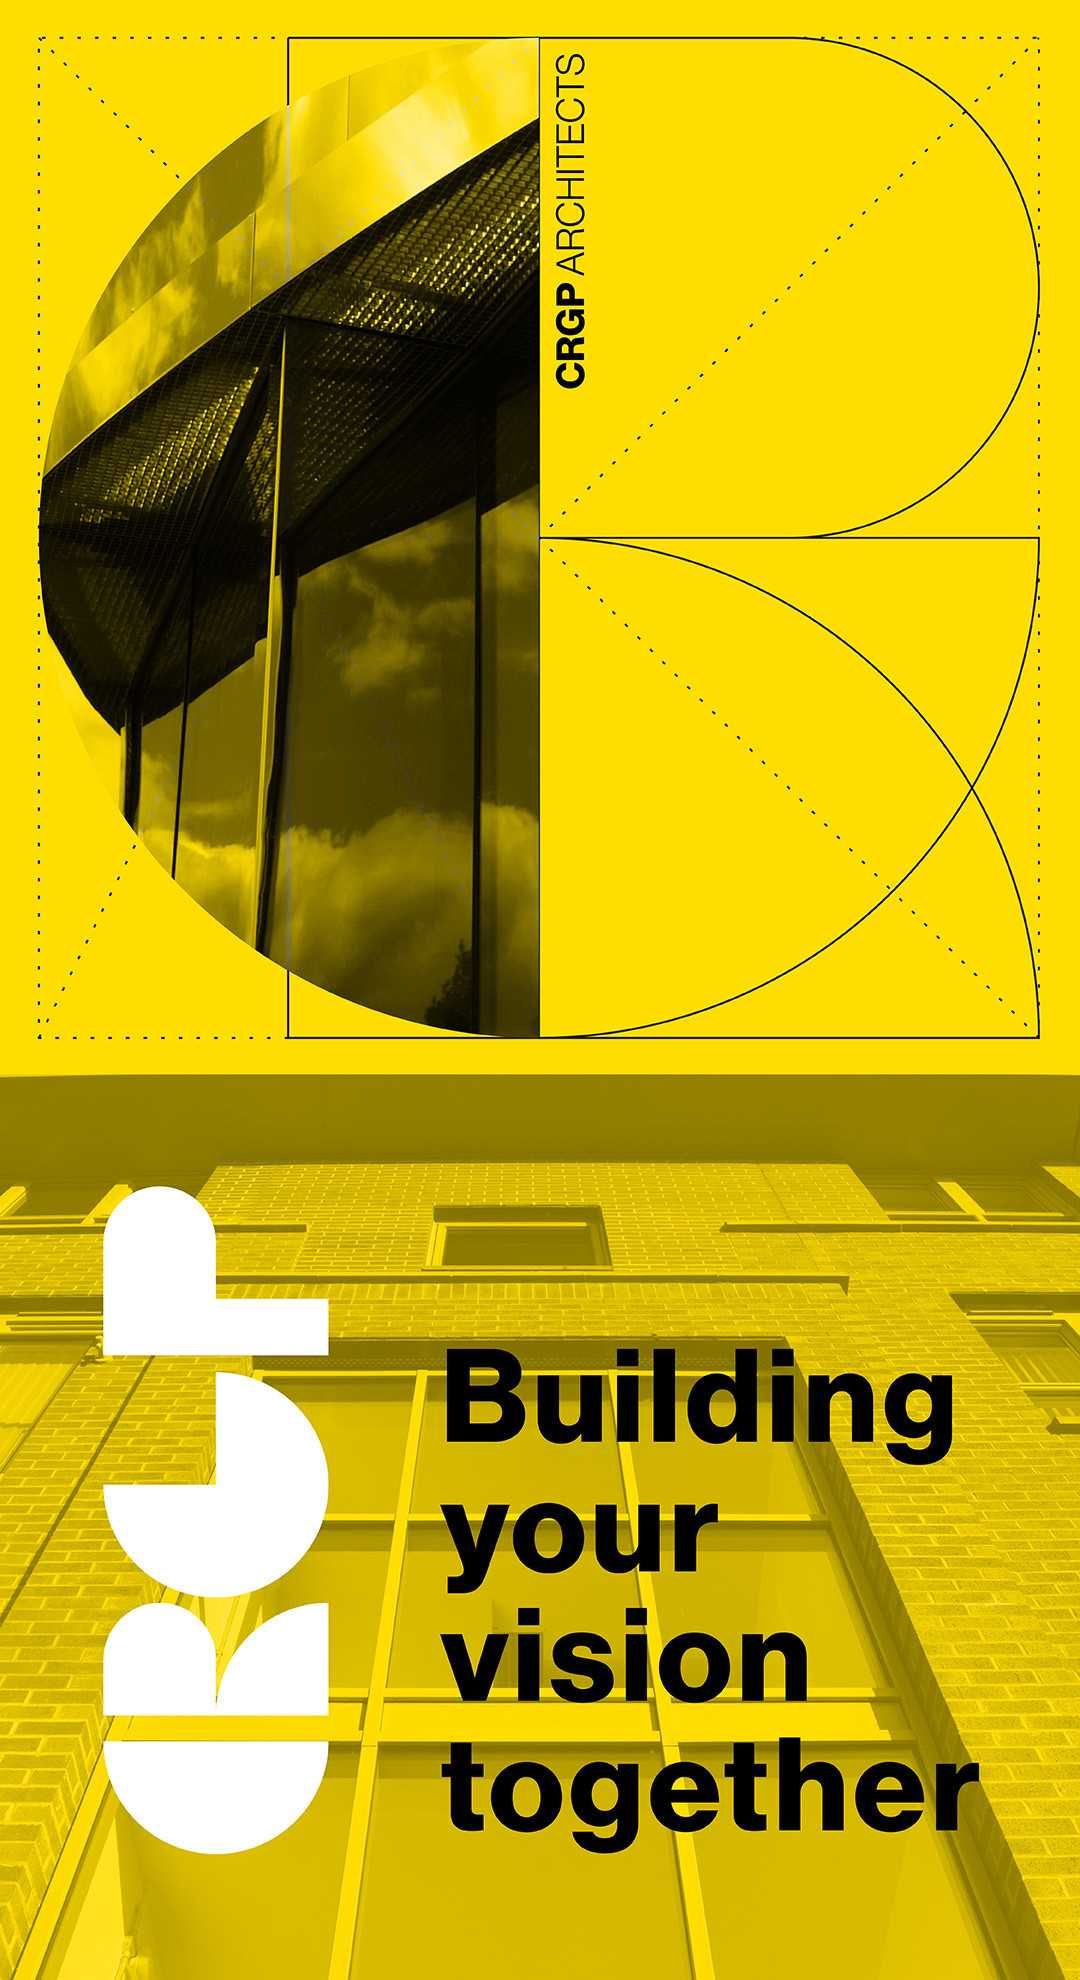 CRGP Homepage banner for mobile, showing a stylised, half-circle crop of a completed building project to the top, with the CRGP logo and tagline 'Building your vision together' to the bottom